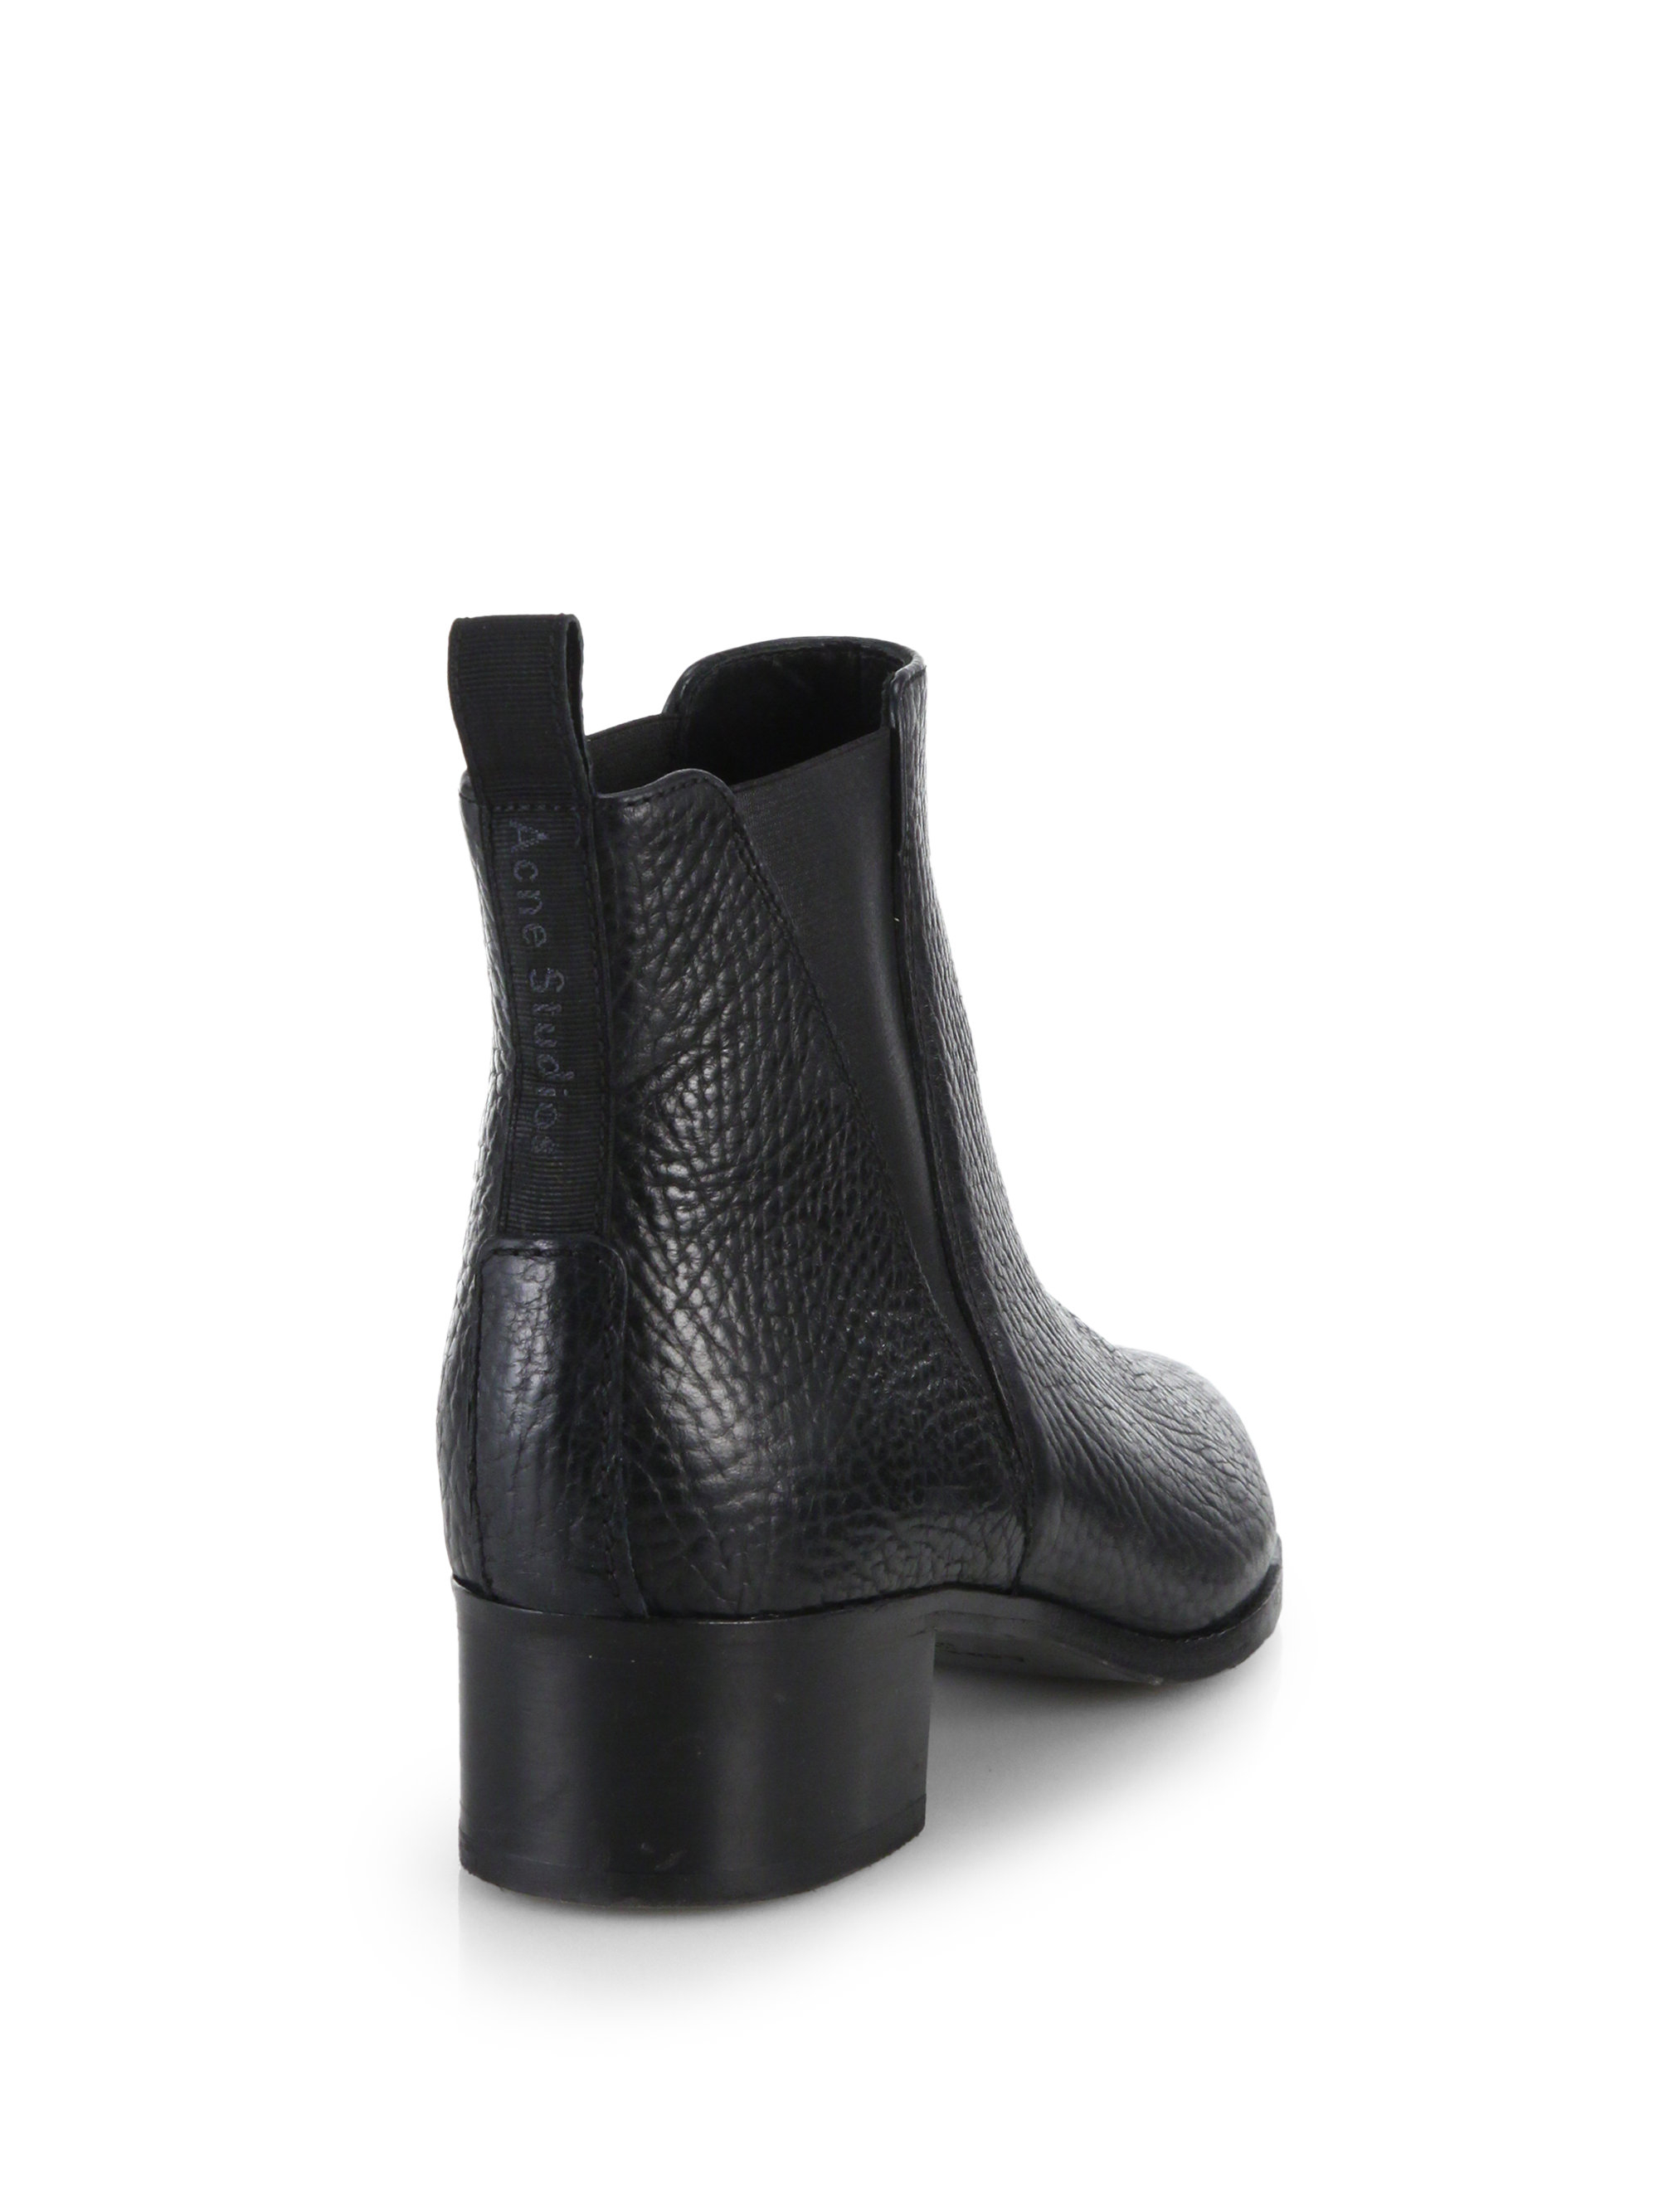 e08047eb589 Lyst - Acne Studios Jensen Pebbled Leather Ankle Boots in Black for Men